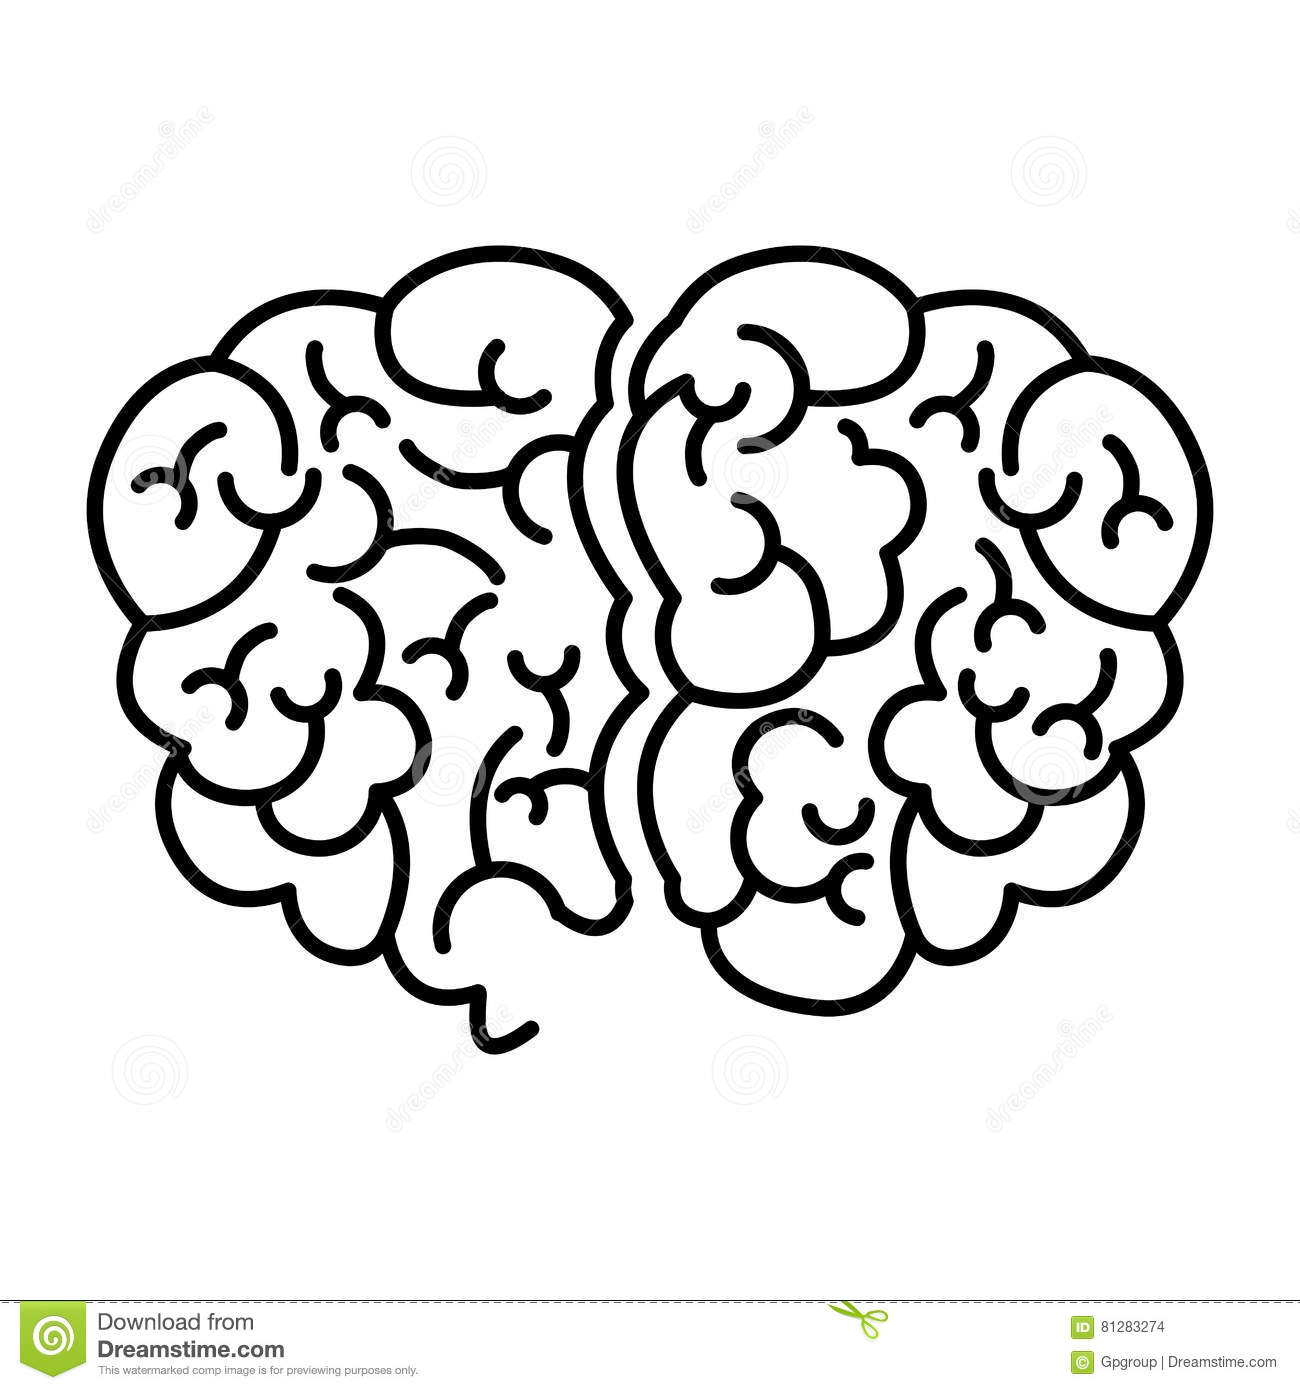 Human Brain Top View Cartoon Vector